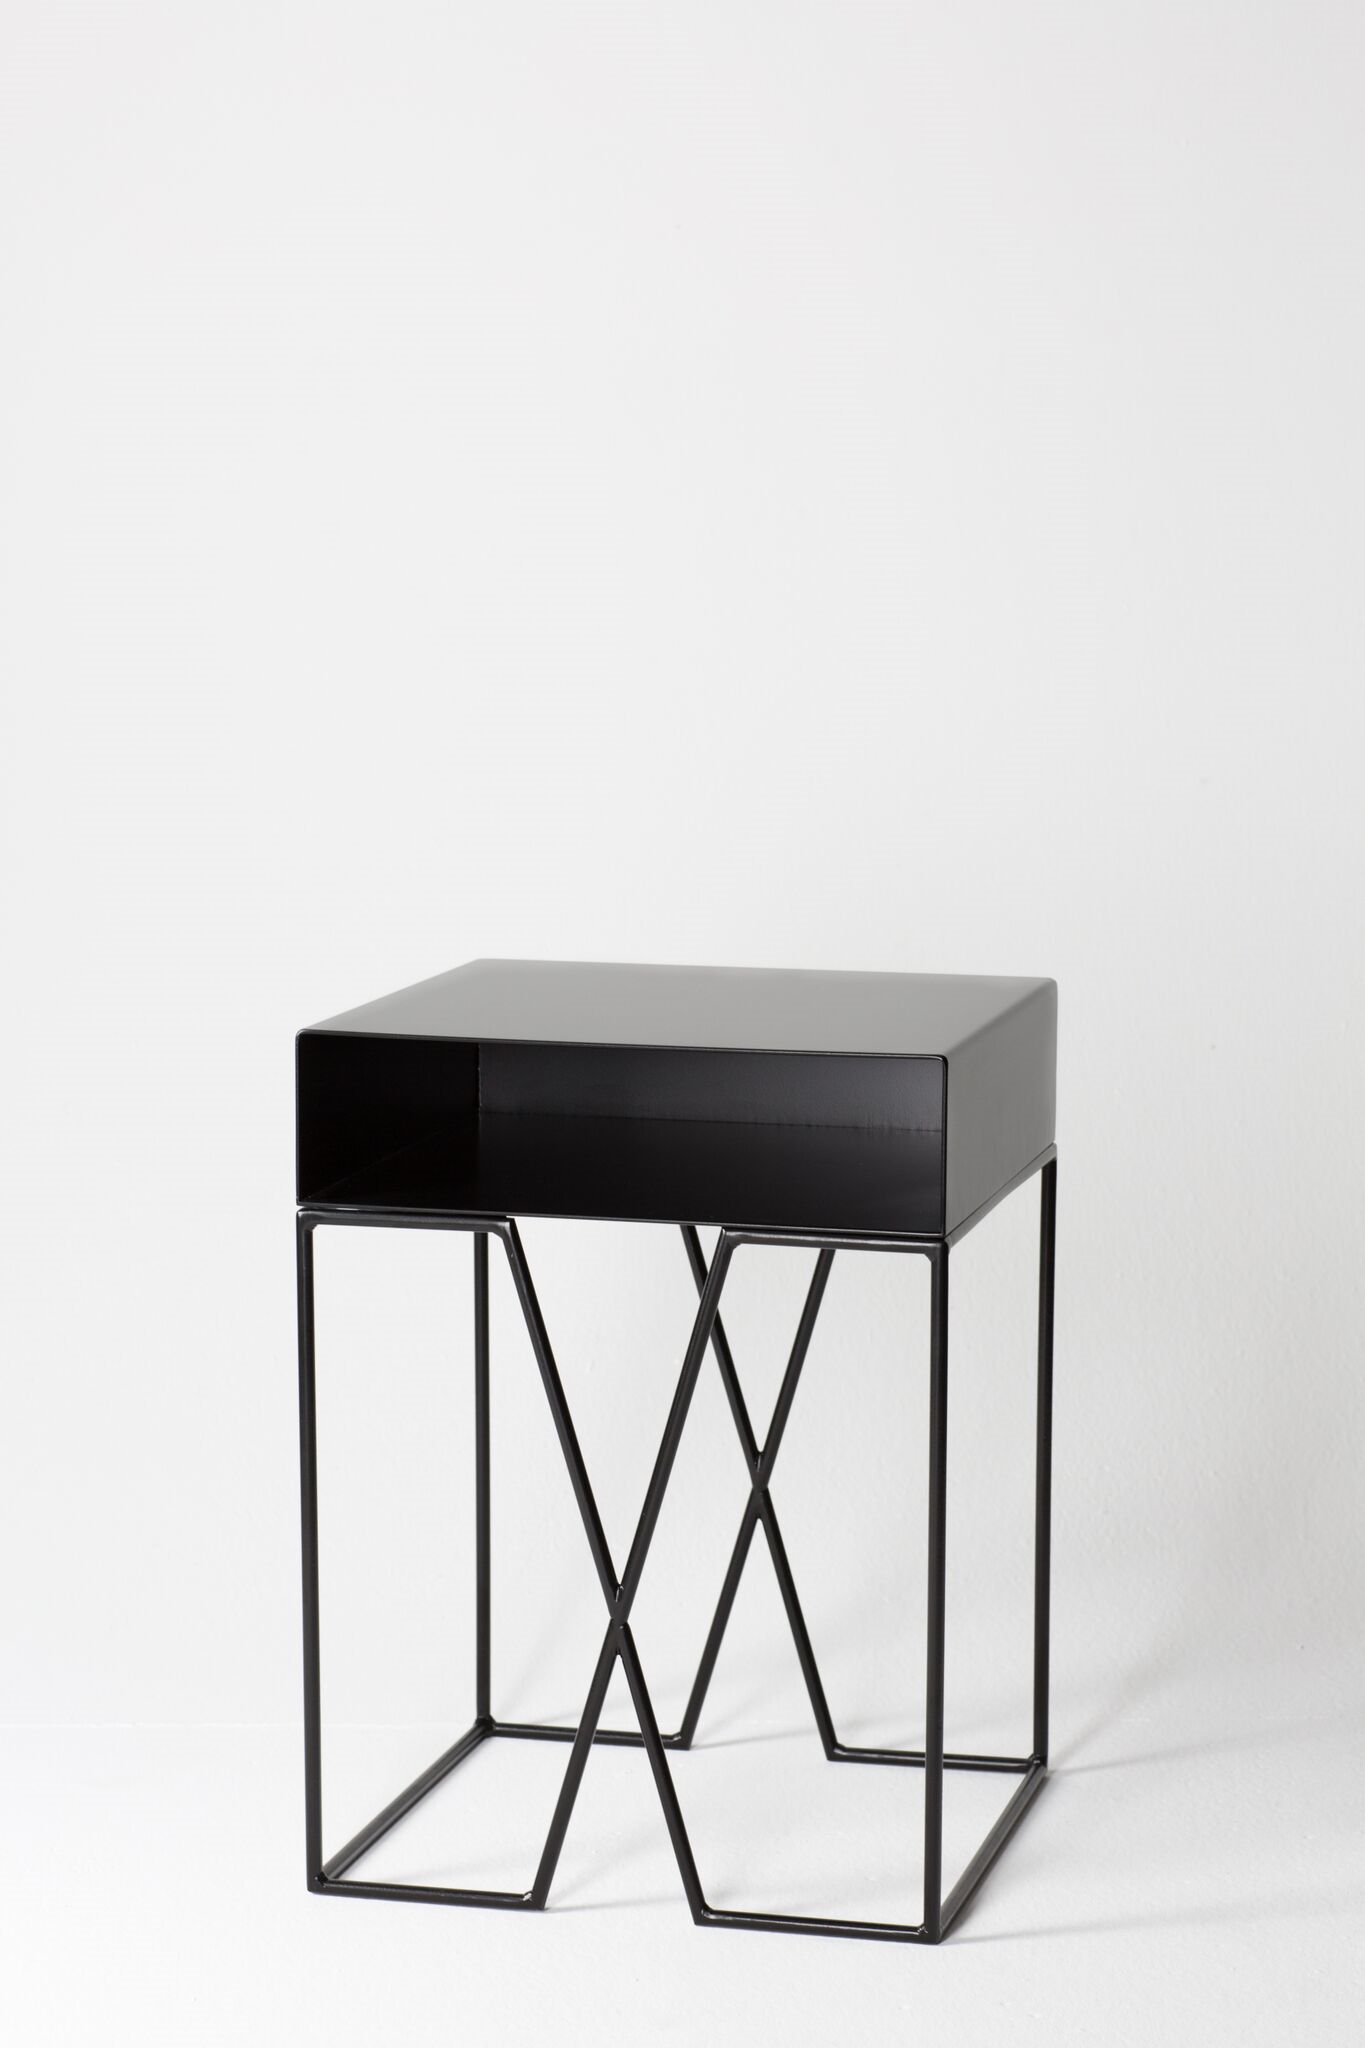 Gallery Of Tangram Bedside Table By Idle Hands Local Australian Furniture & Object Design West Heidelberg, Melbourne Image 3